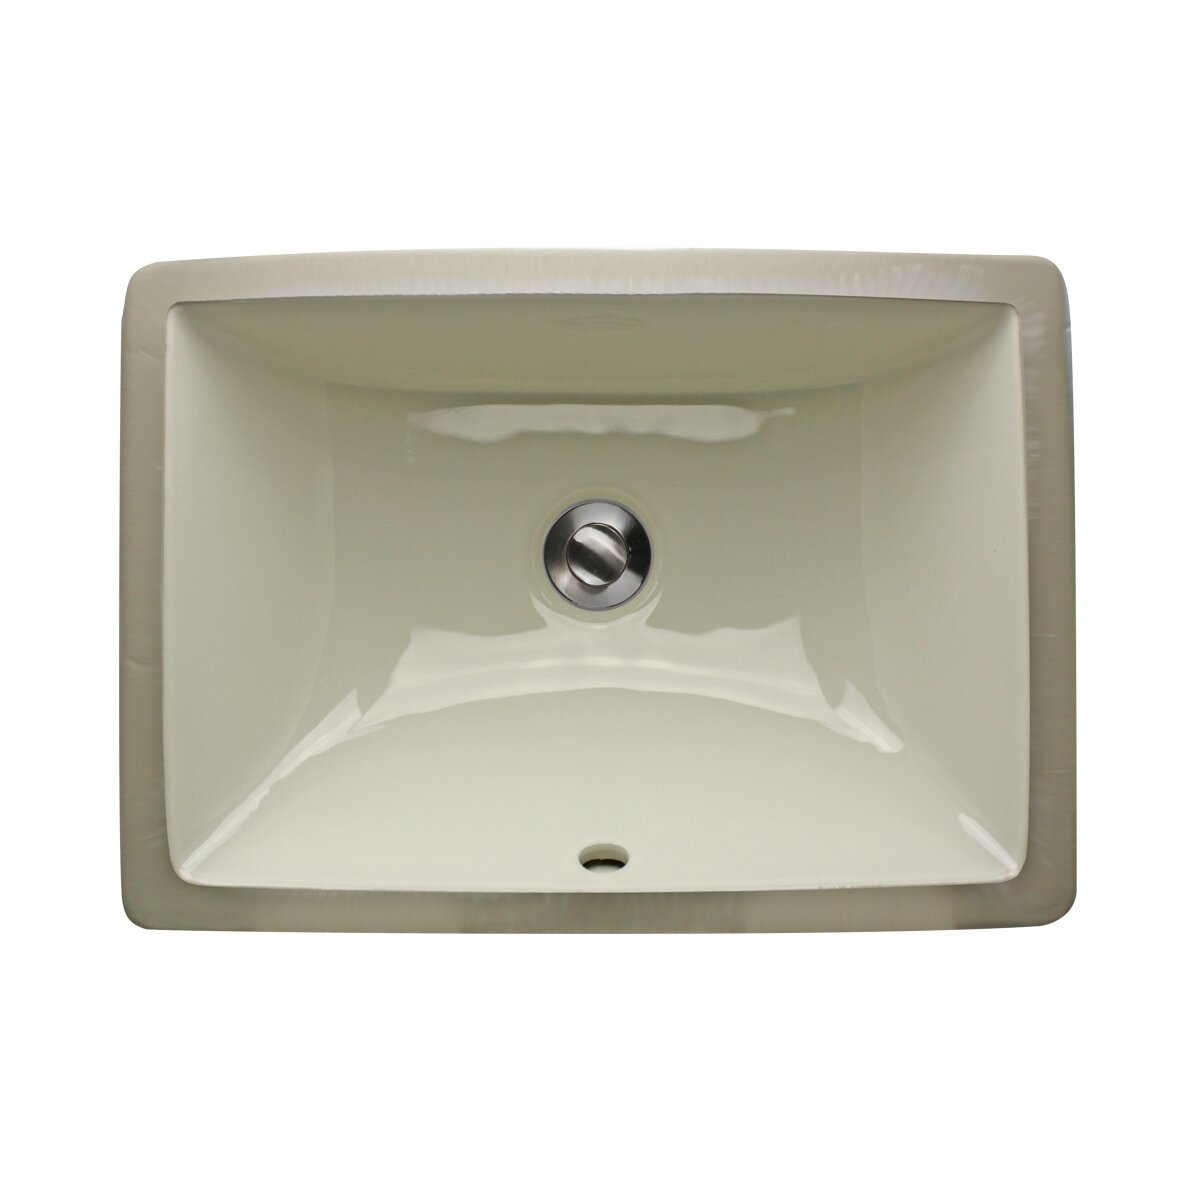 Nantucket Sinks Rectangle Ceramic Undermount Bathroom Sink